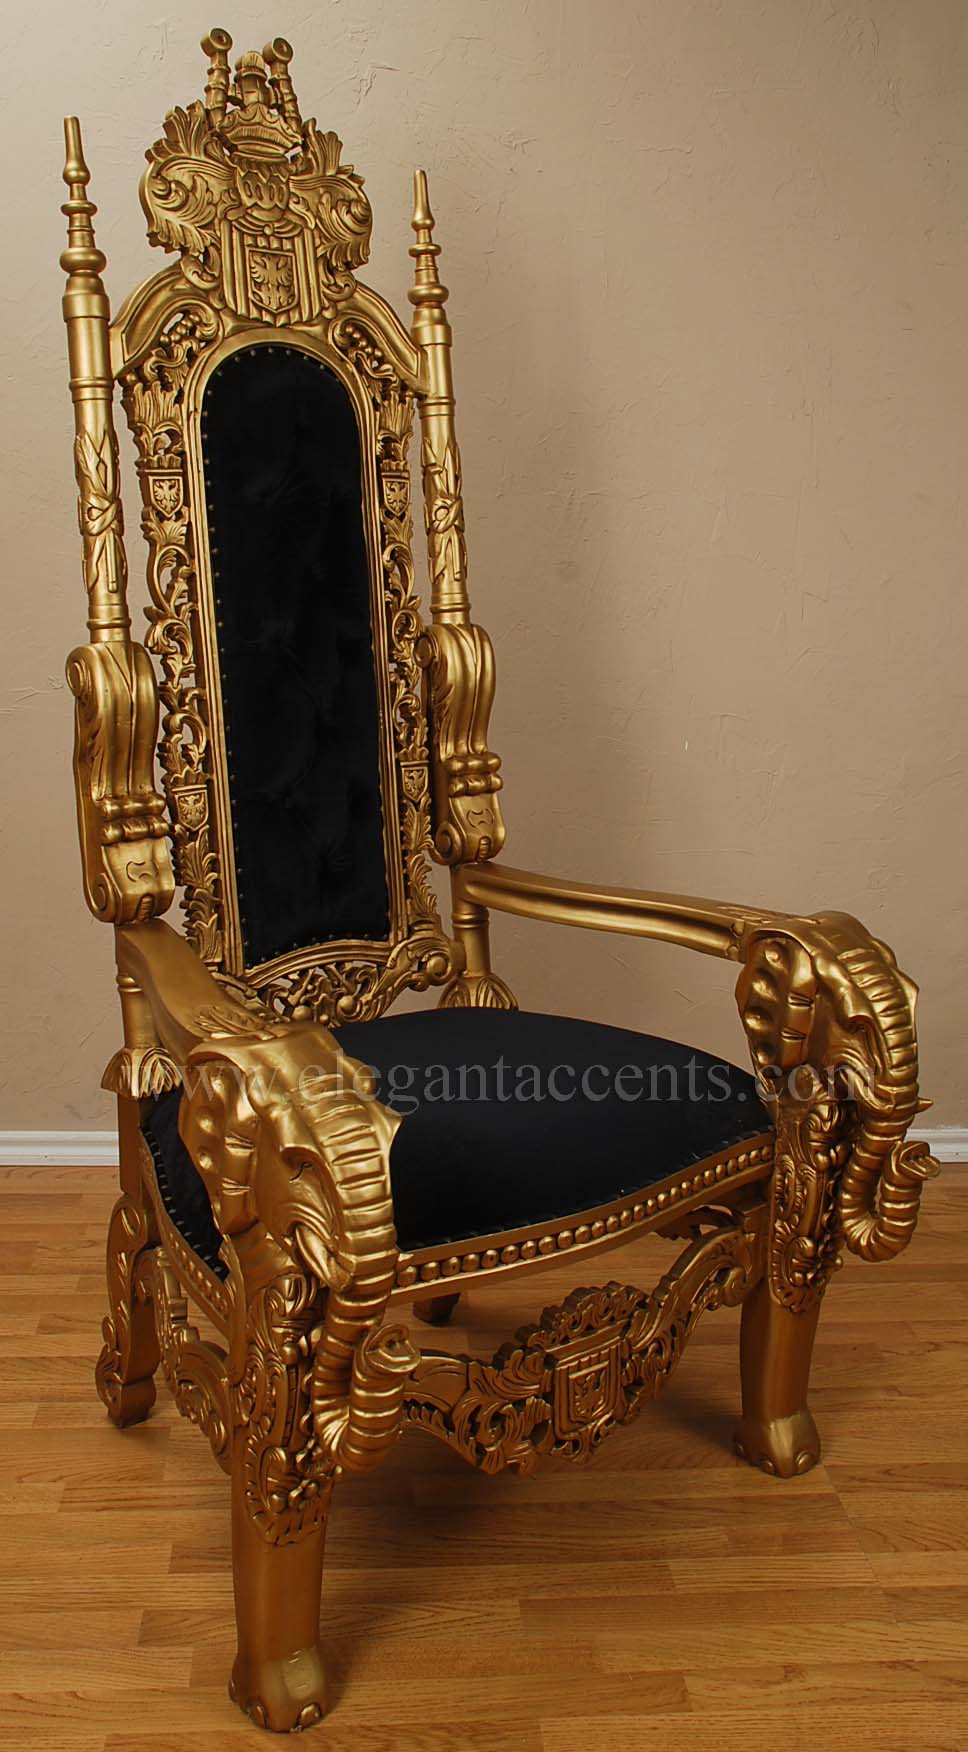 products > accent chairs & thrones > throne chairs